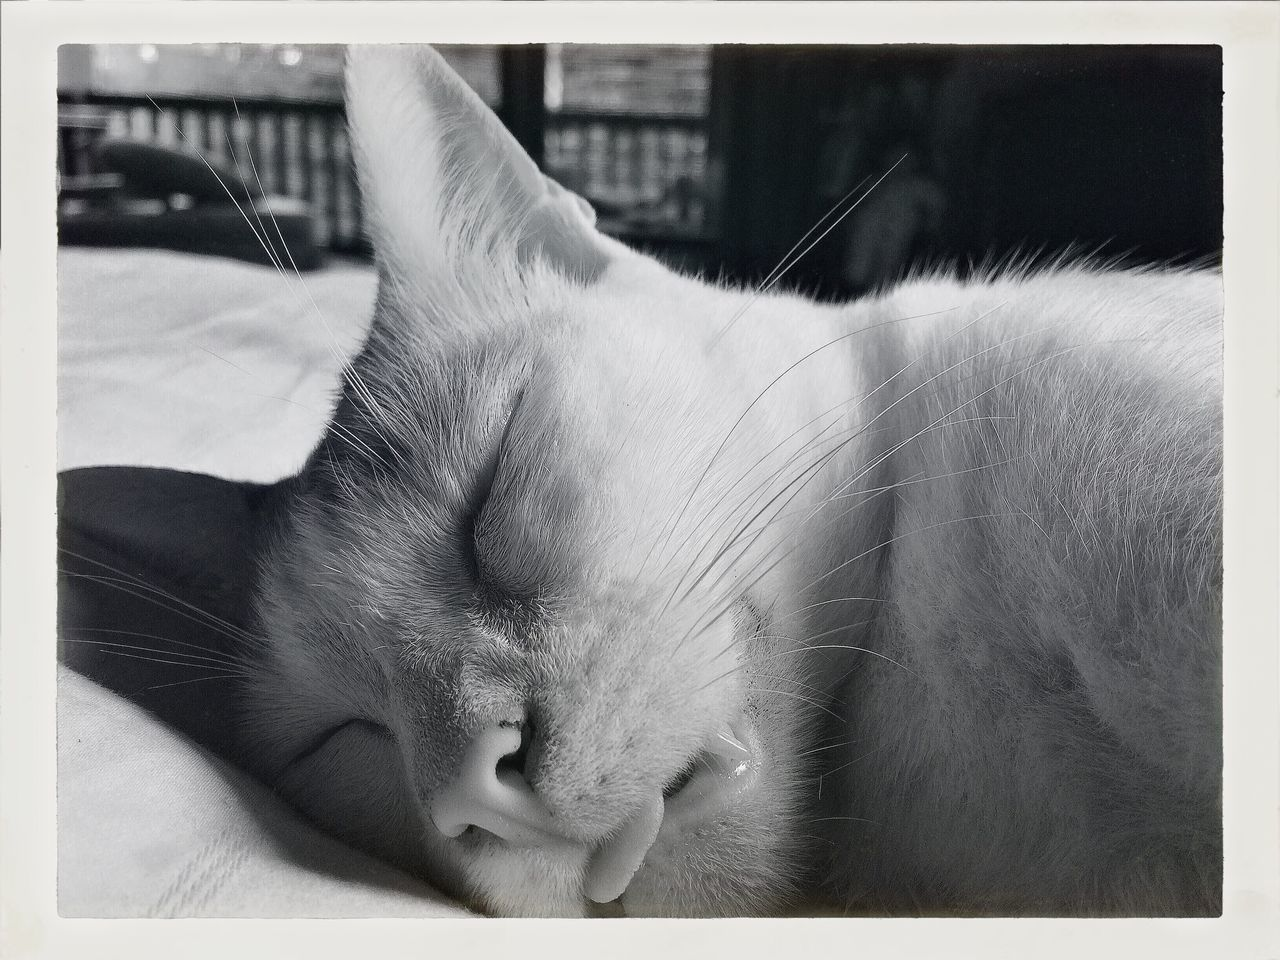 Sleeping Morning Time Cute Pets Popeye My Lovely Cat IPhoneography Blackandwhite Best EyeEm Shot Touge Out Funny Faces